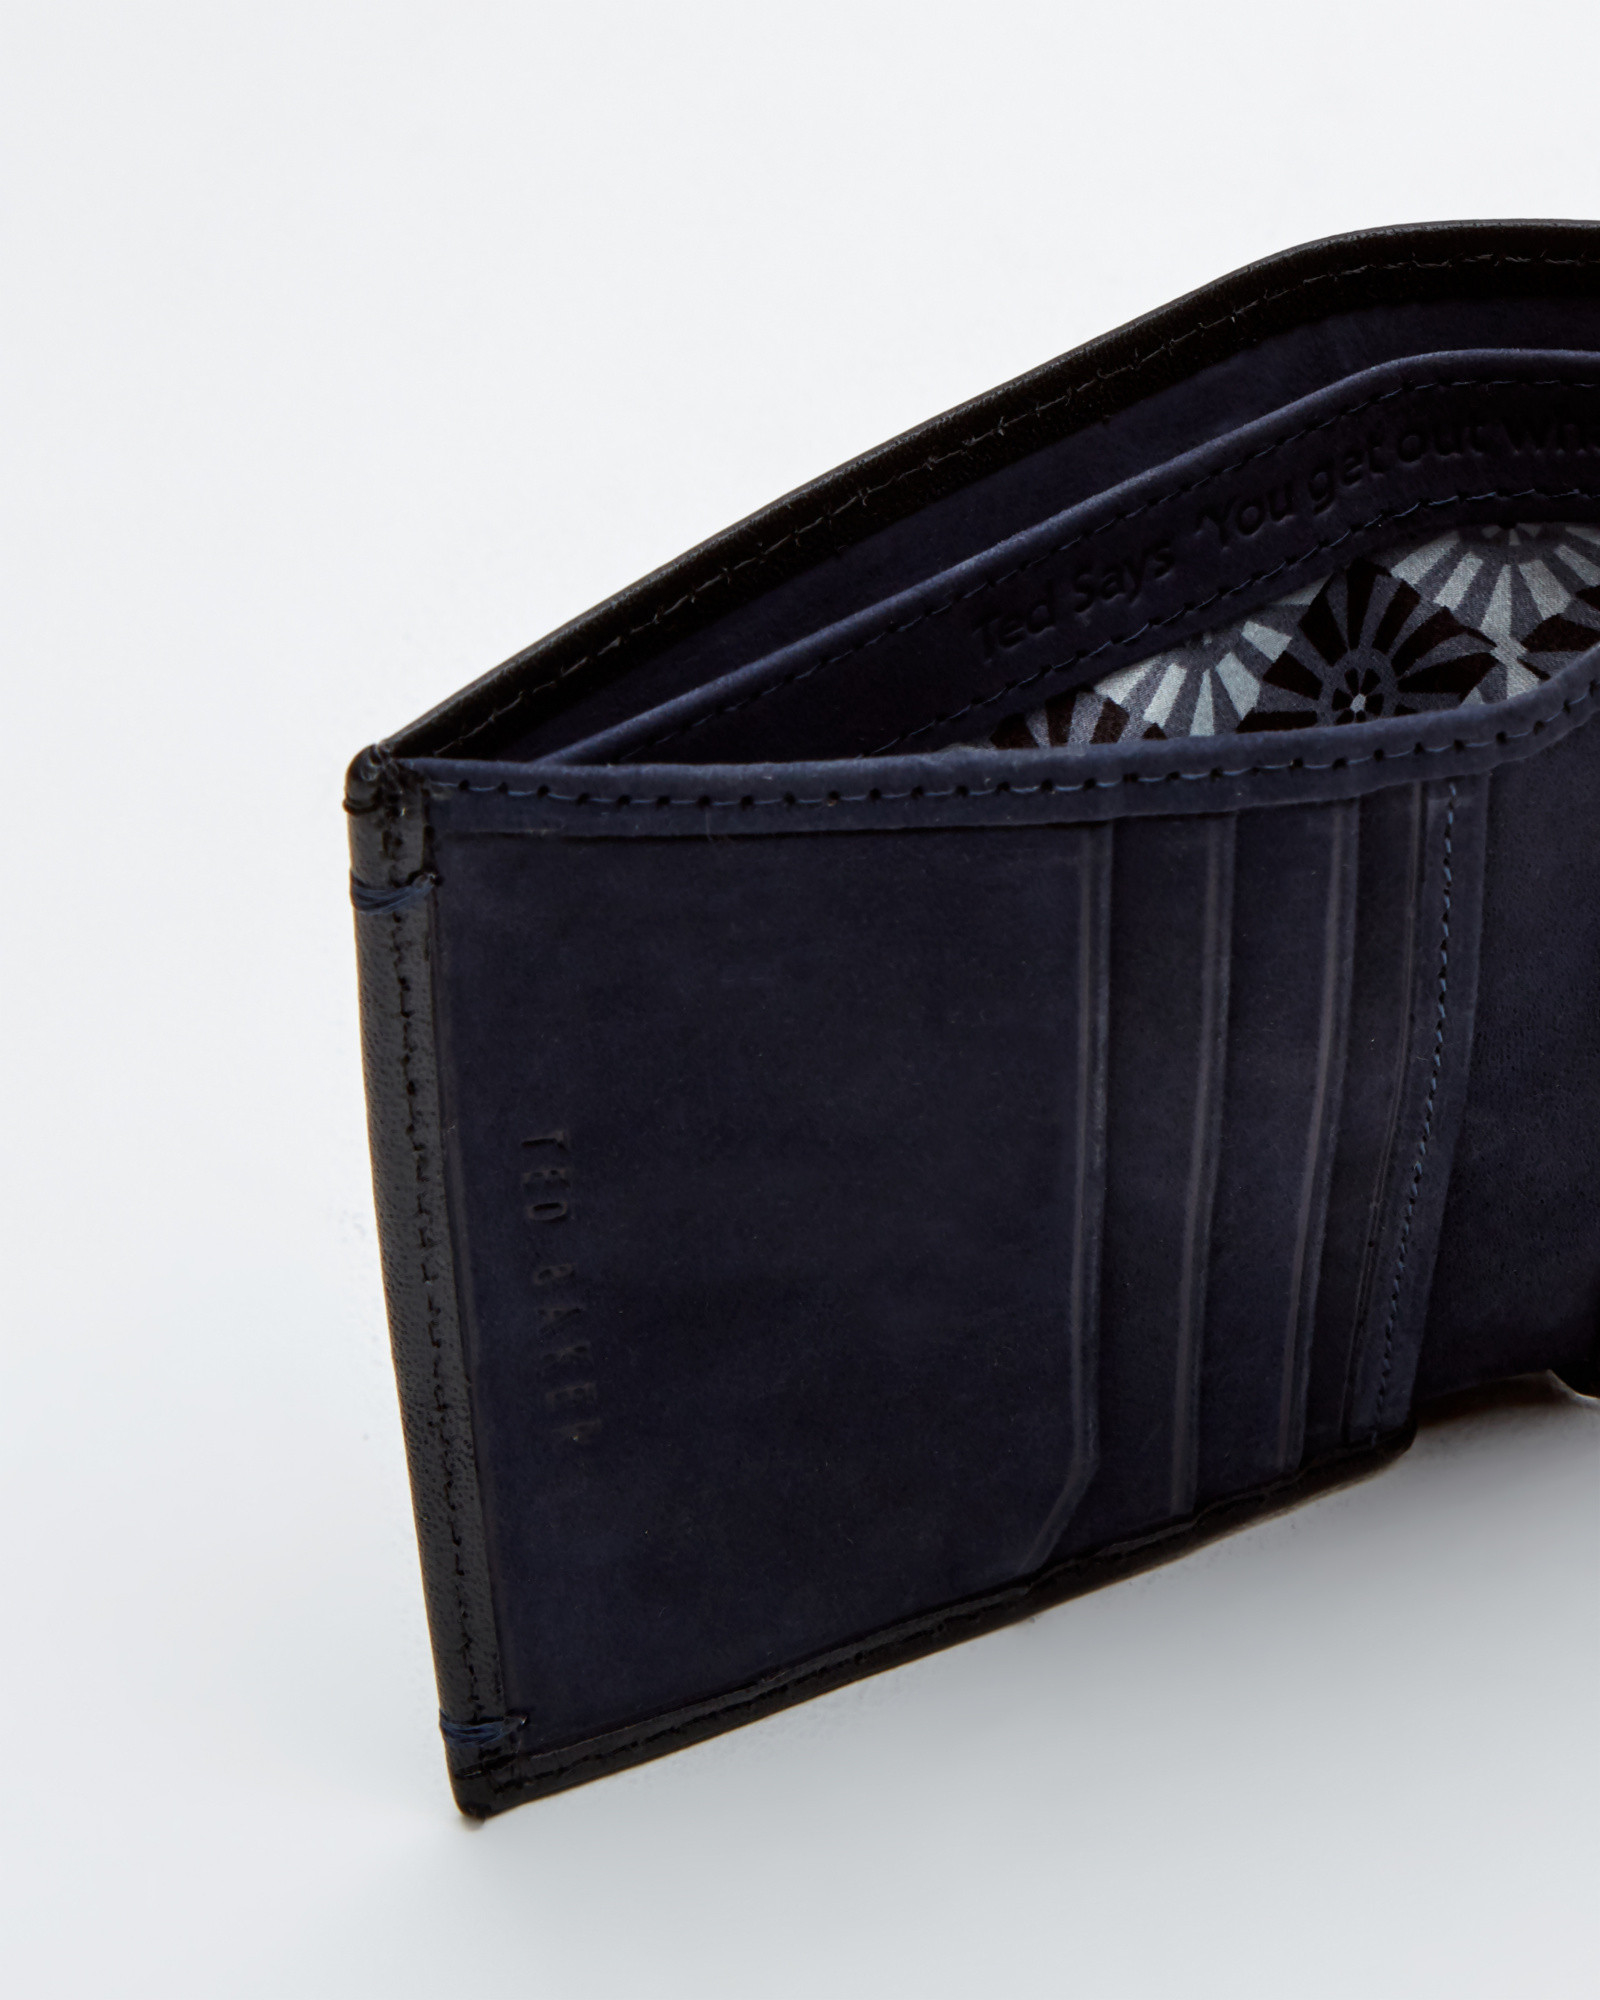 63e3db5501b5 Ted Baker Black Wallet Best Photo Justiceforkenny. Amazing Ted Baker Accsi  Card Holder And Bracelet Gift Chocolate Mens Wallets Canada Ygf5g69hc65nif